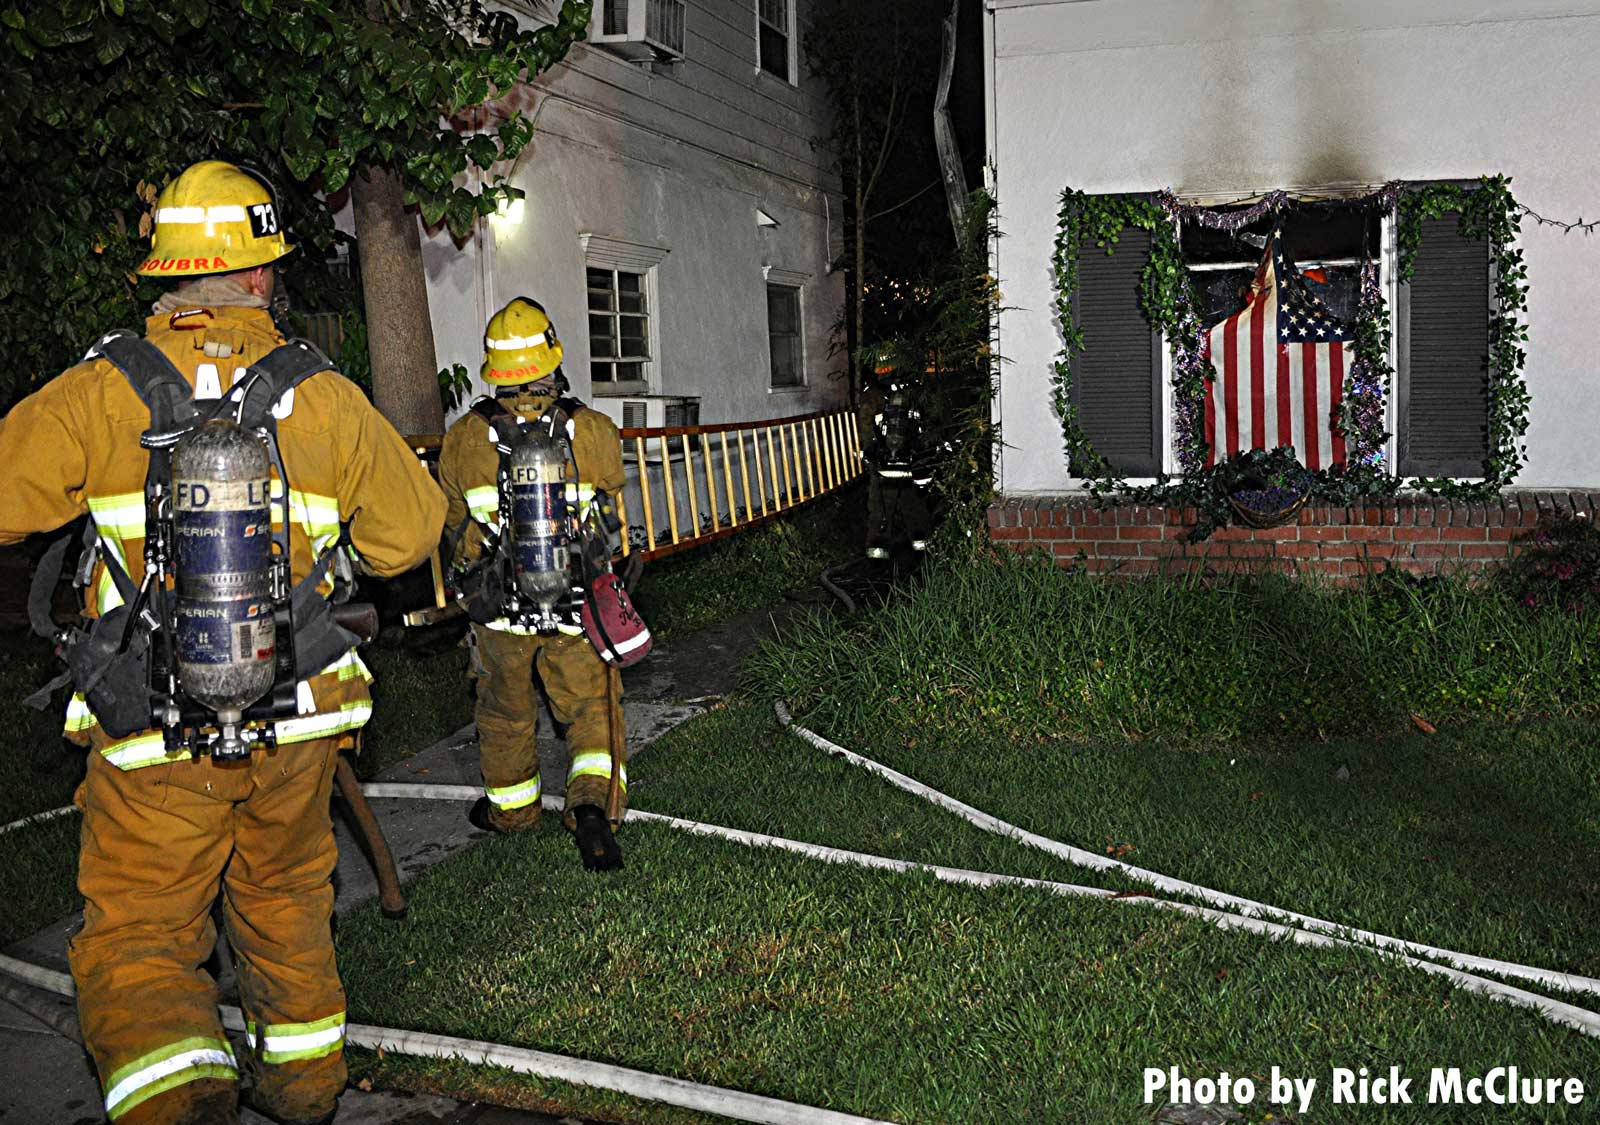 LAFD firefighters advance a ladder between structures while U.S. flag hangs in window